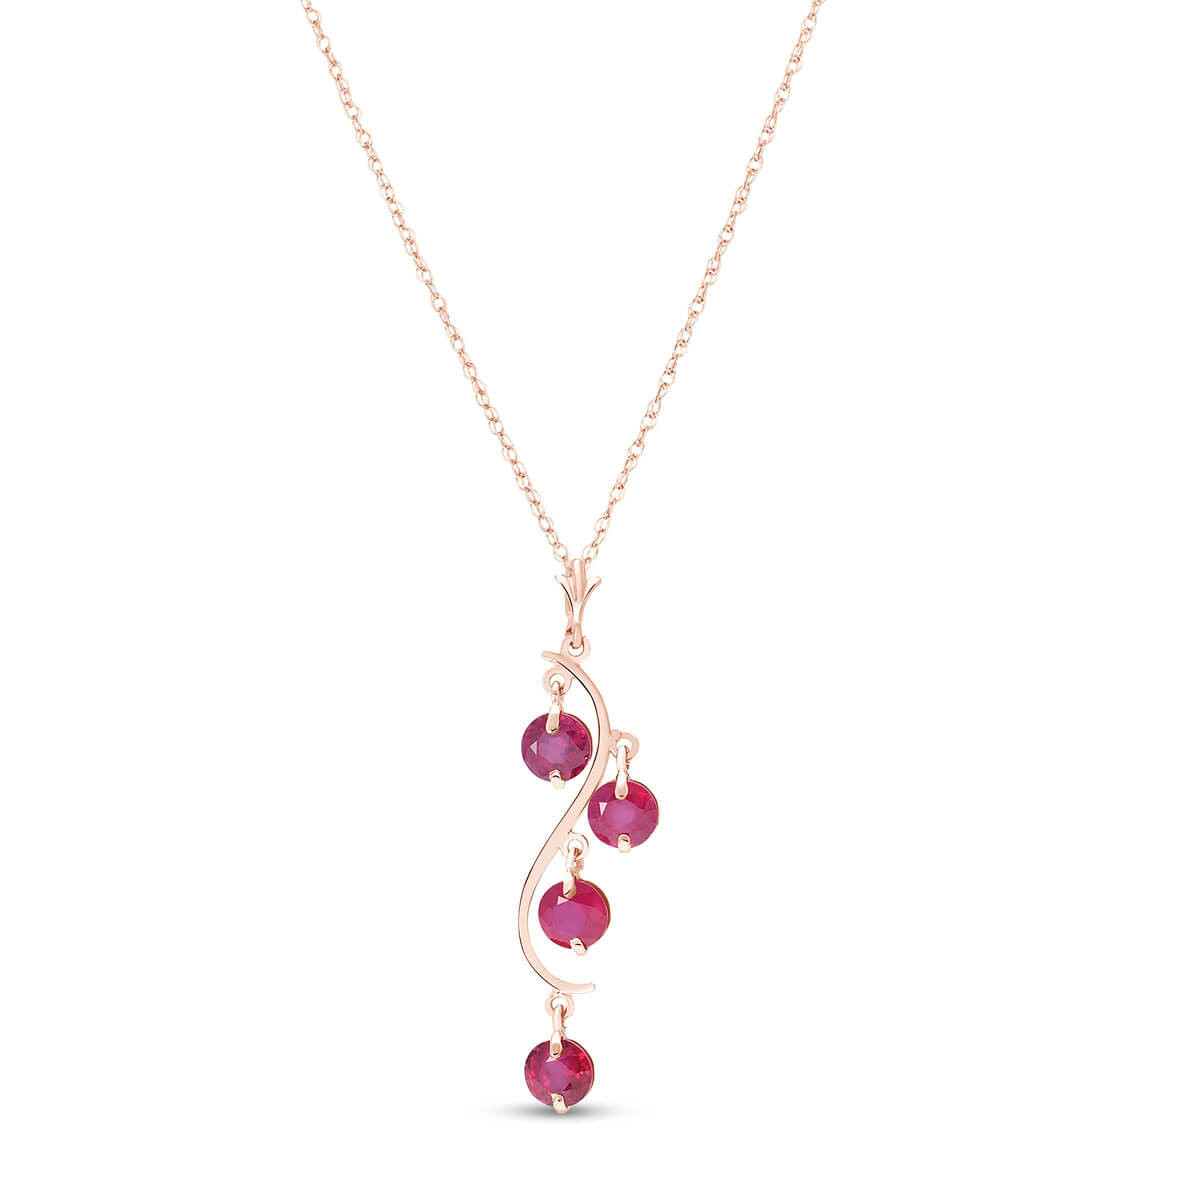 Ruby Dream Catcher Pendant Necklace 2 ctw in 9ct Rose Gold